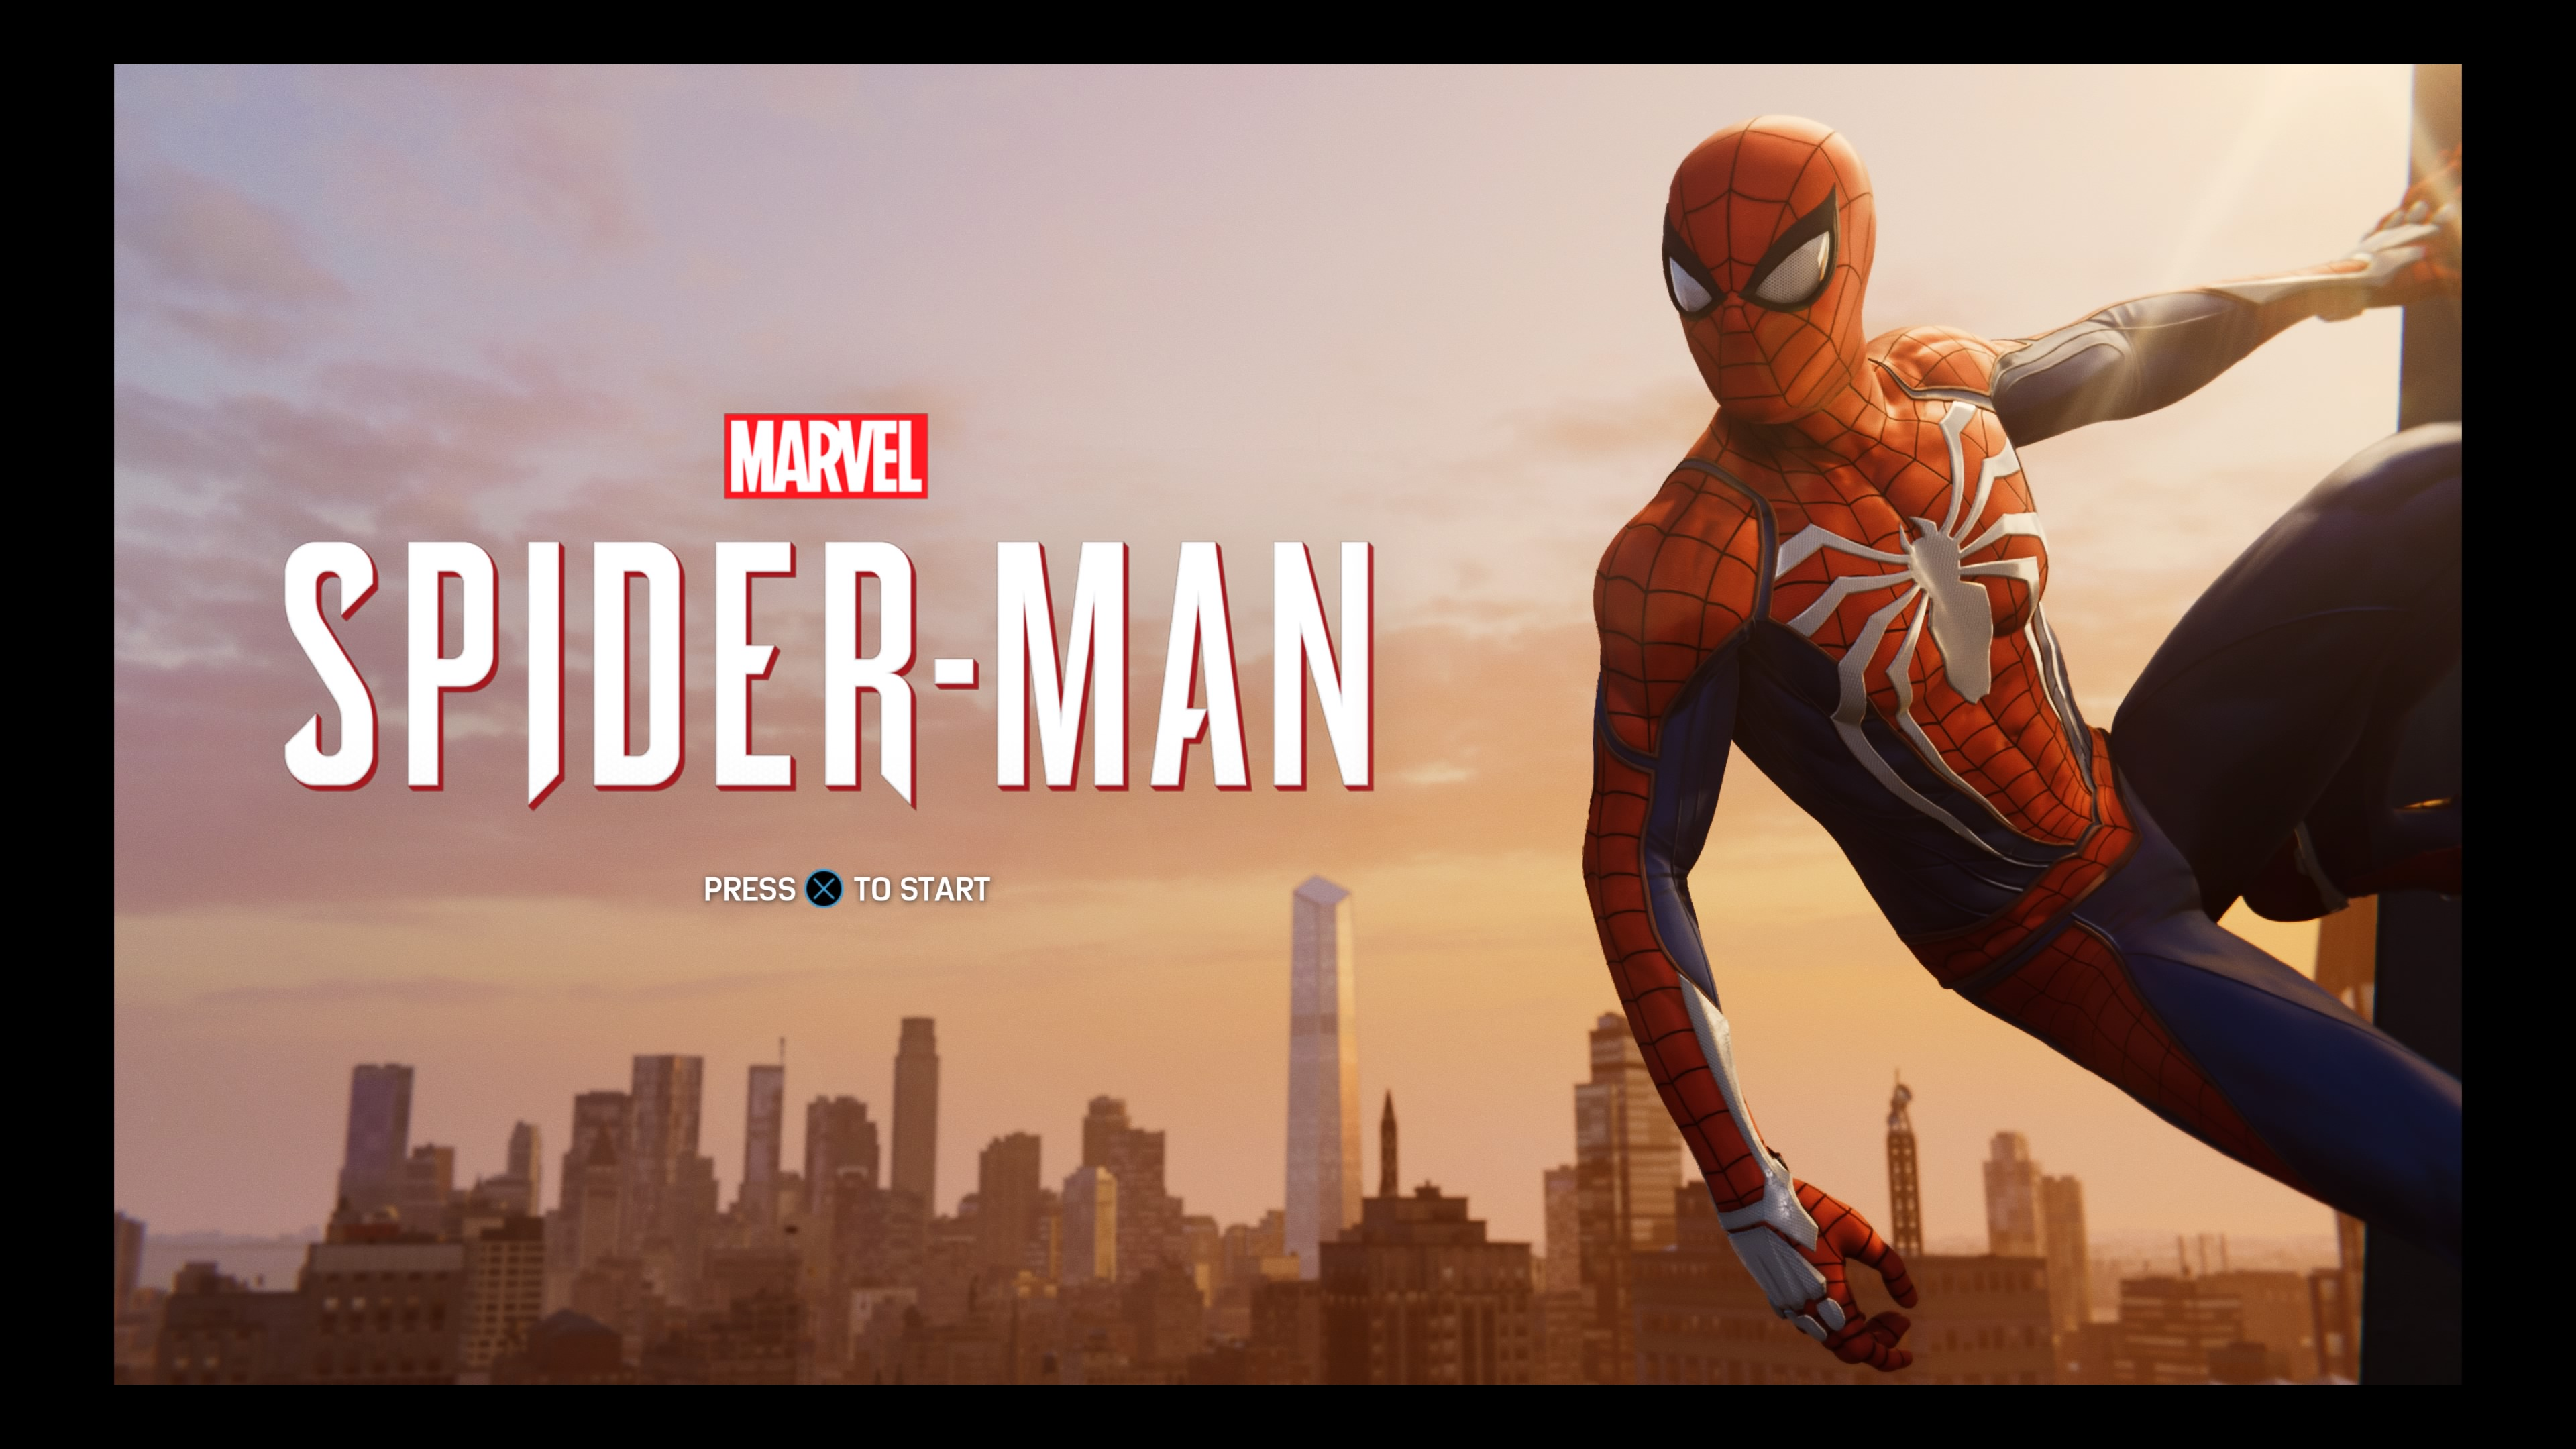 Marvel's Spider-Man - title screen